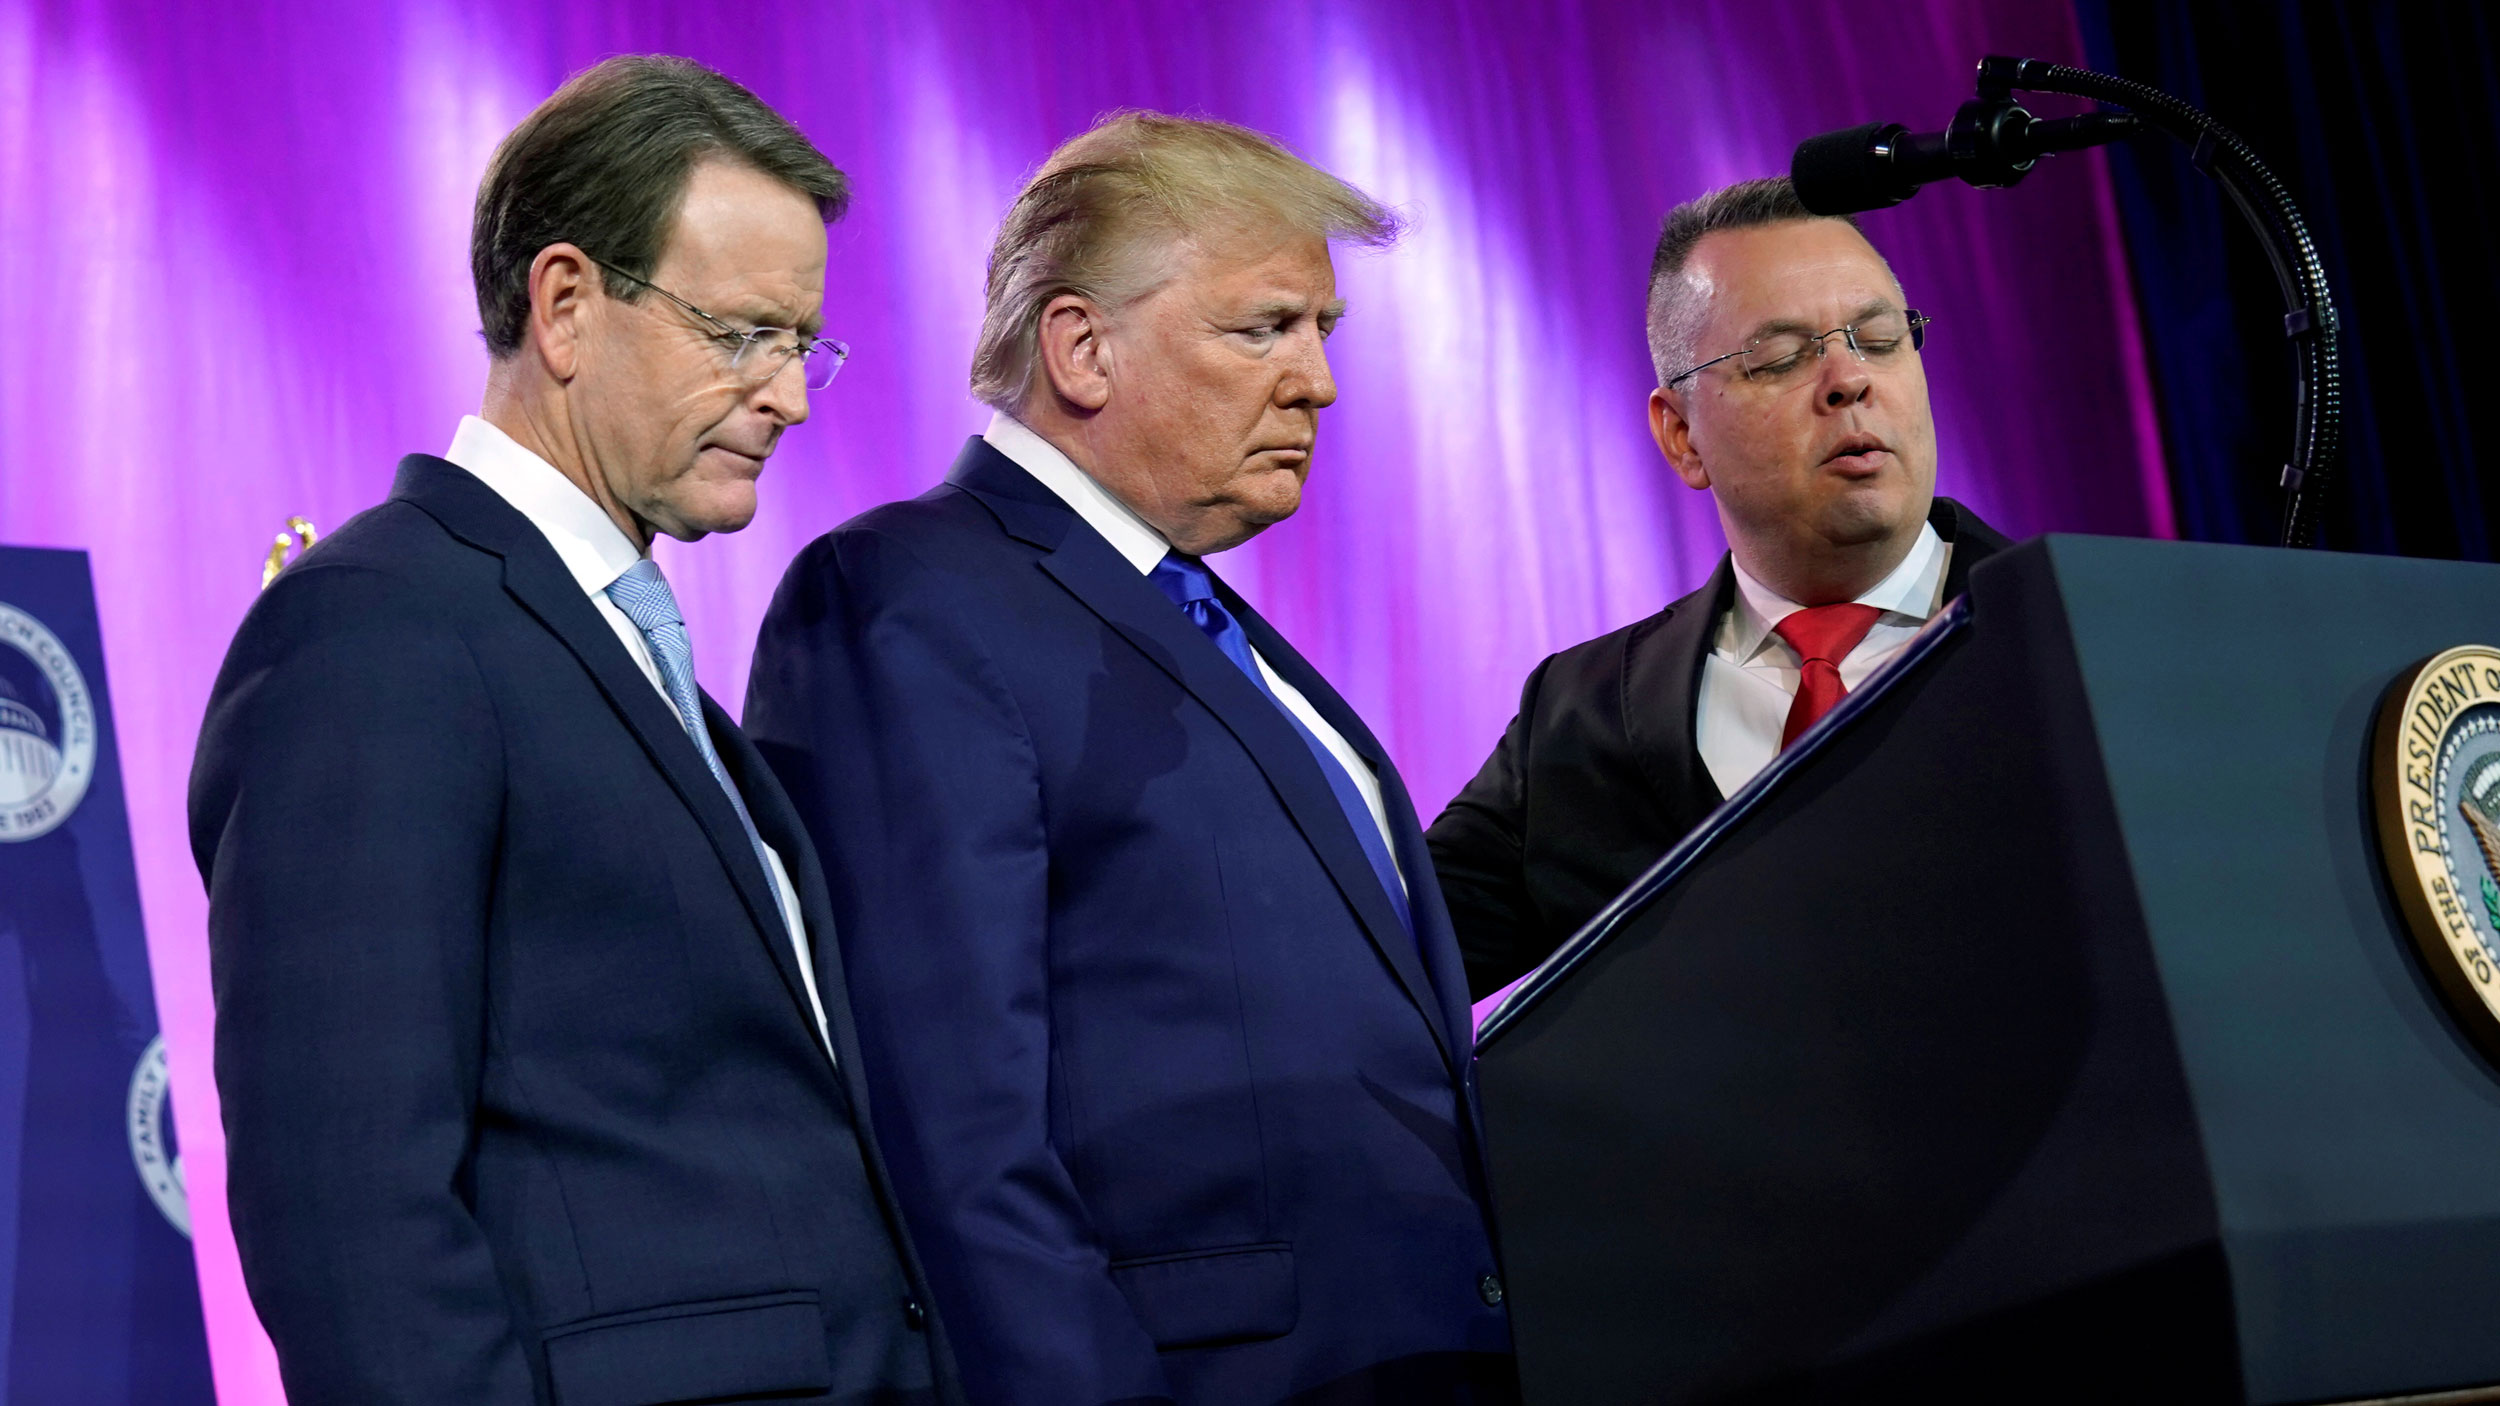 Three men in suits stand with their heads bowed.